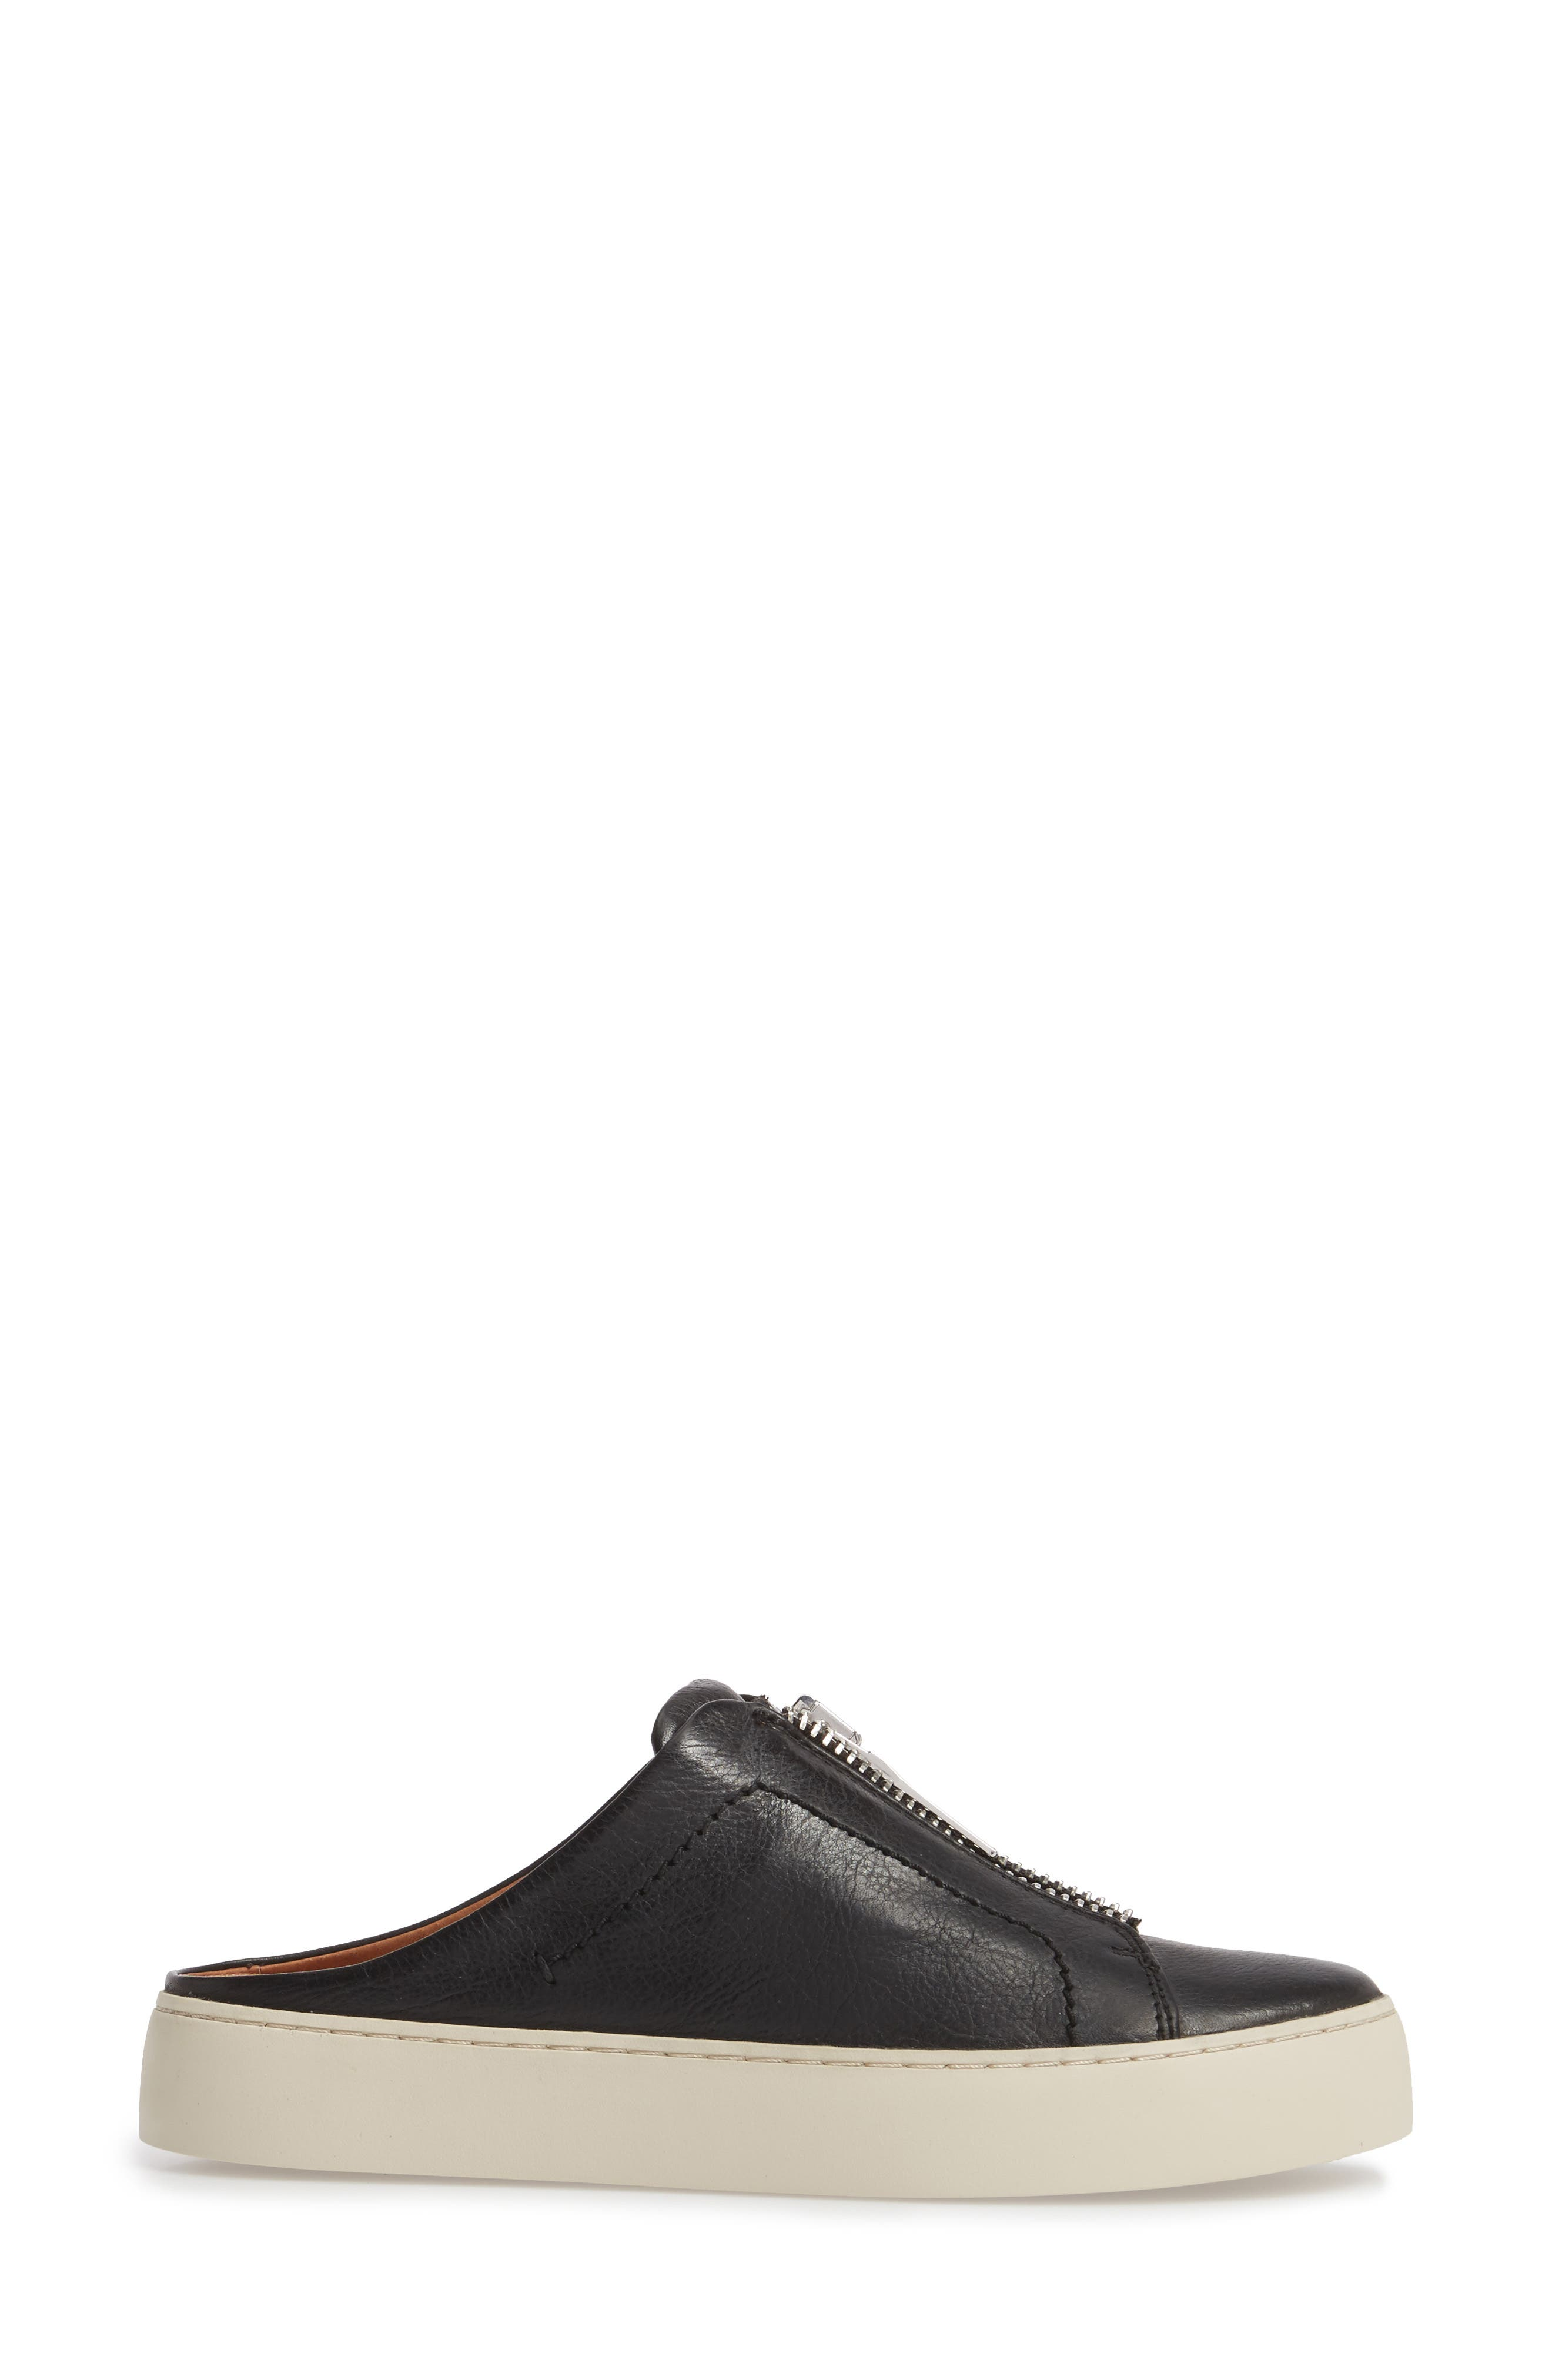 Lena Platform Sneaker Mule,                             Alternate thumbnail 3, color,                             Black Leather